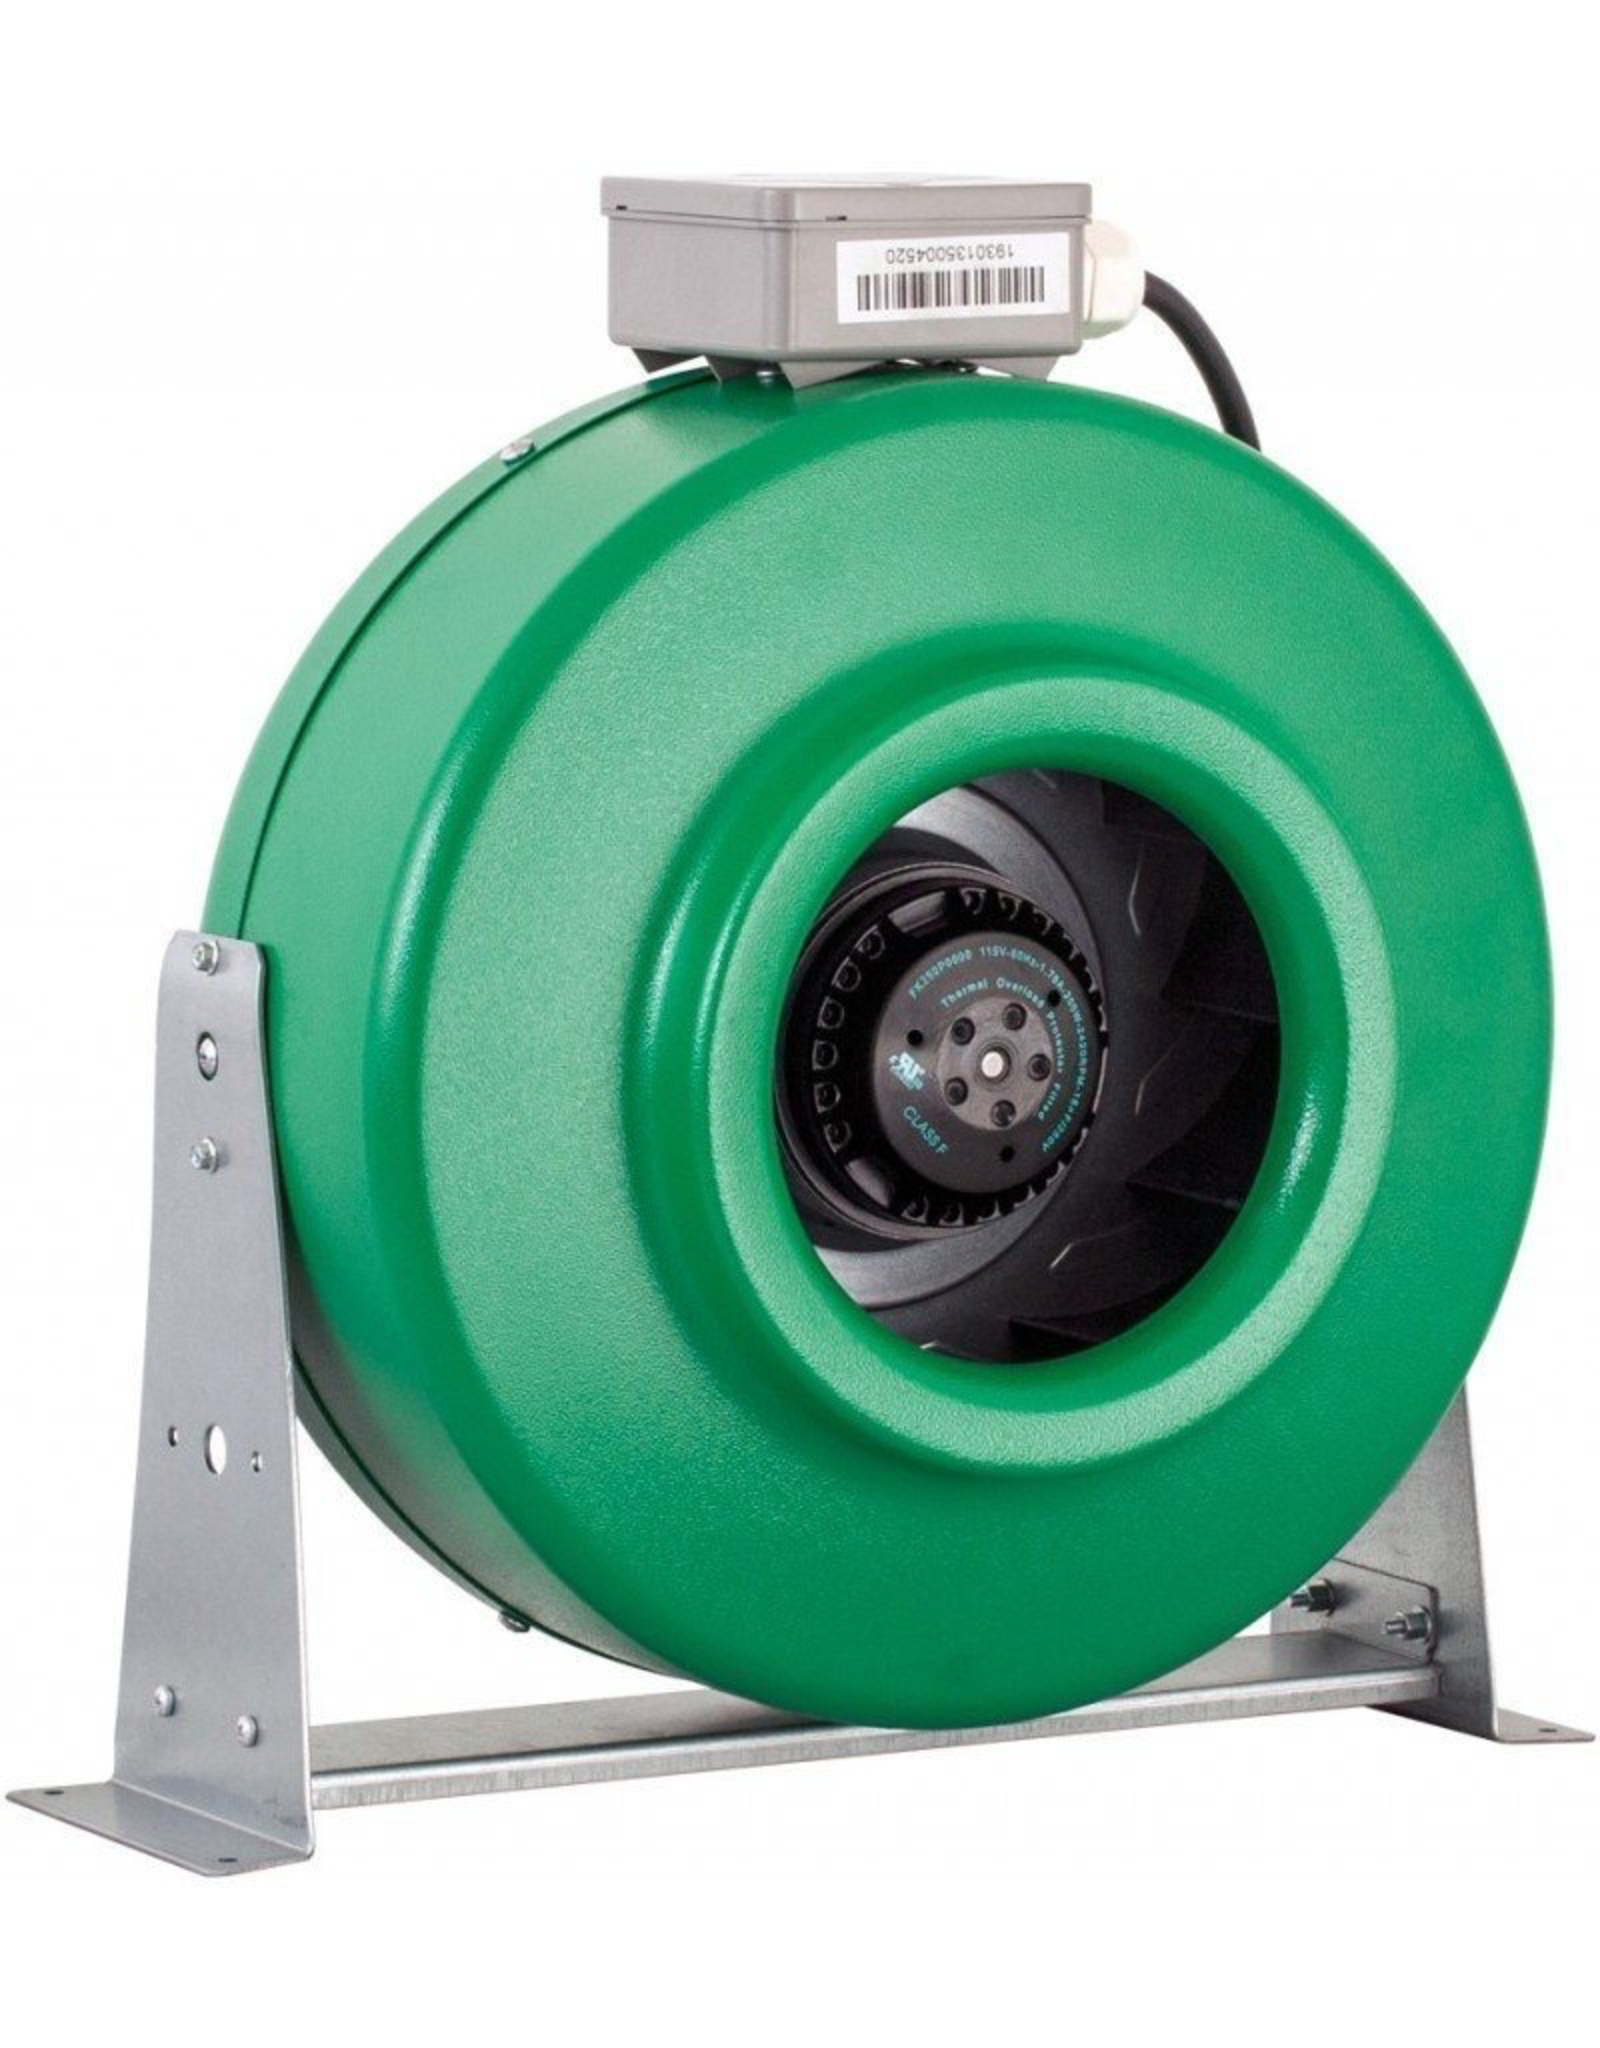 ACTIVE AIR Active Air Inline Duct Fans offer innovation and performance at a great price. With a full line of fans to meet your needs, all Active Air Fans feature:<br /> <br /> Durable ceramic-coated metal housing<br /> UL-recognized components<br /> High quality molded impeller<br /> Low noise